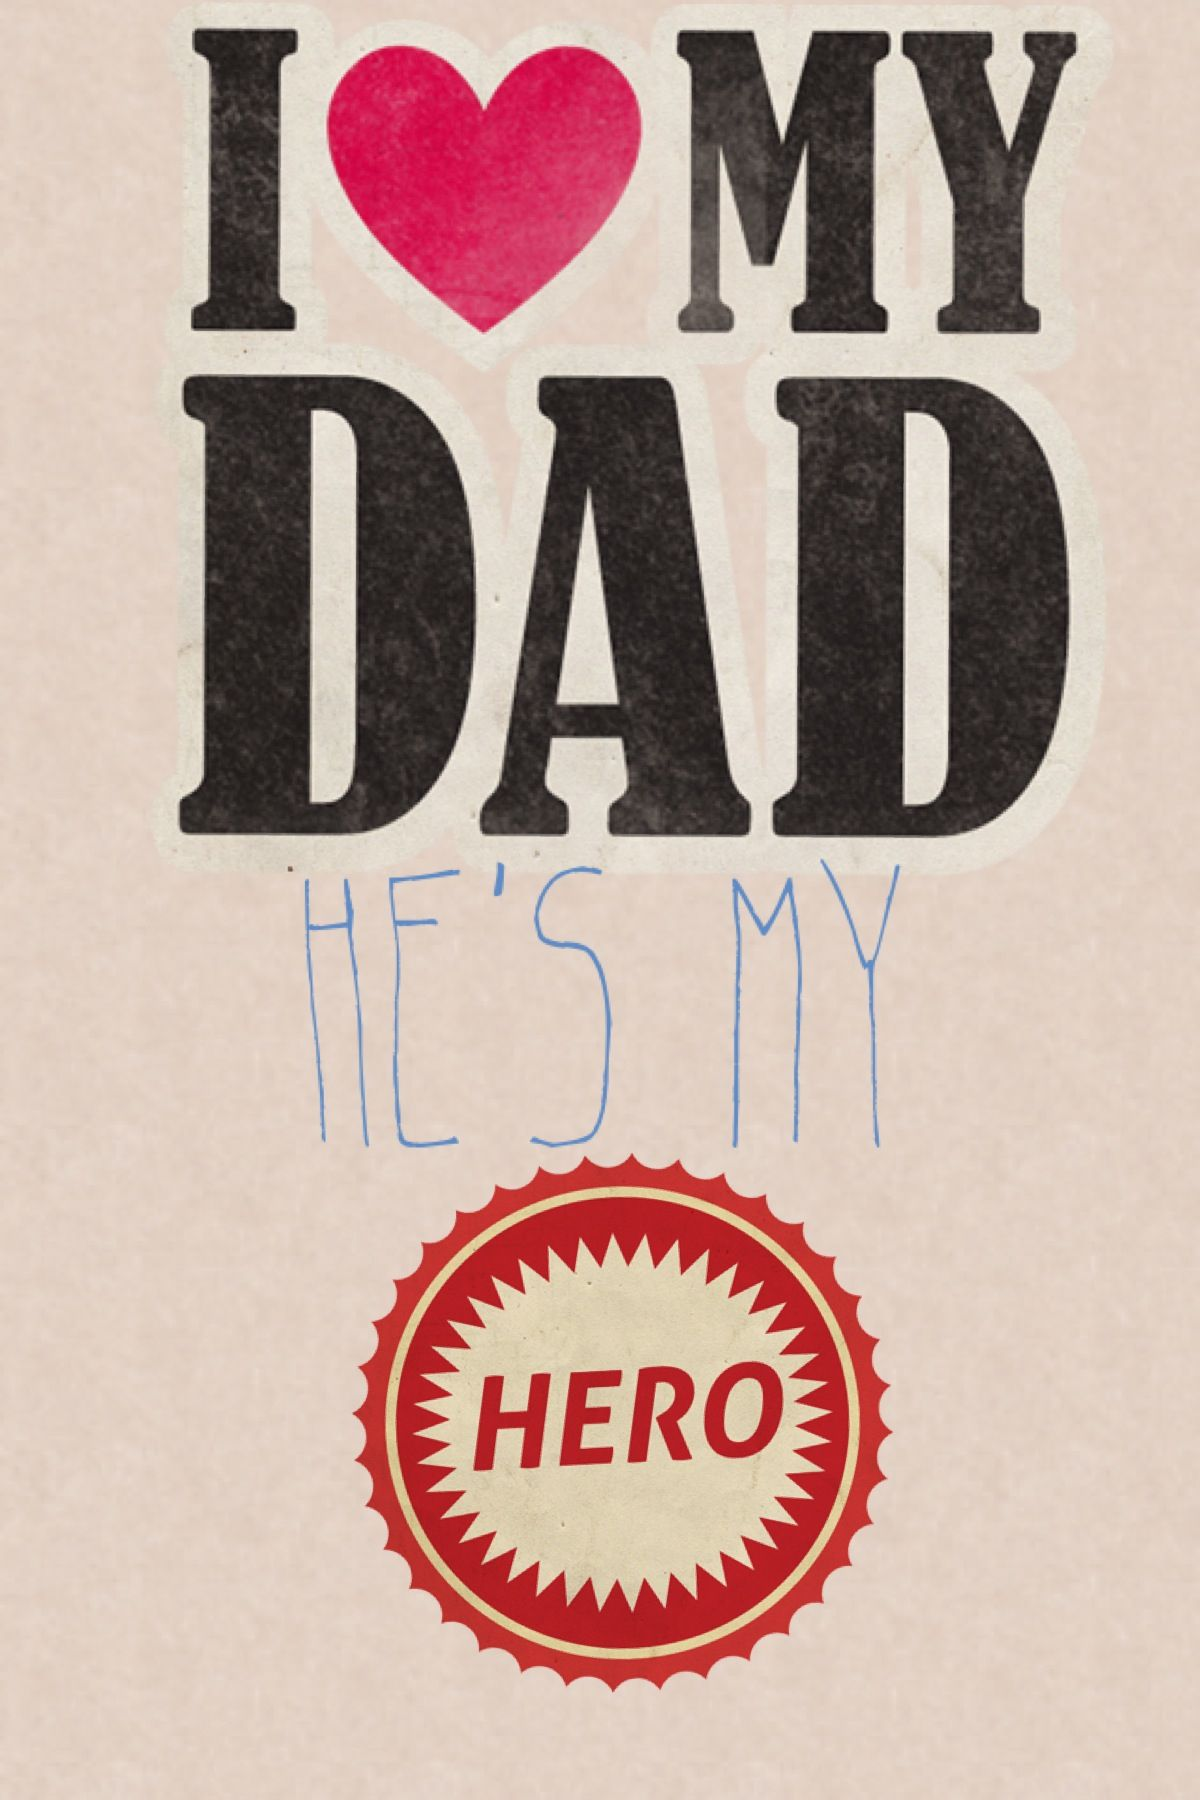 iPhone wallpaper heart love marine With images I love my dad 1200x1800